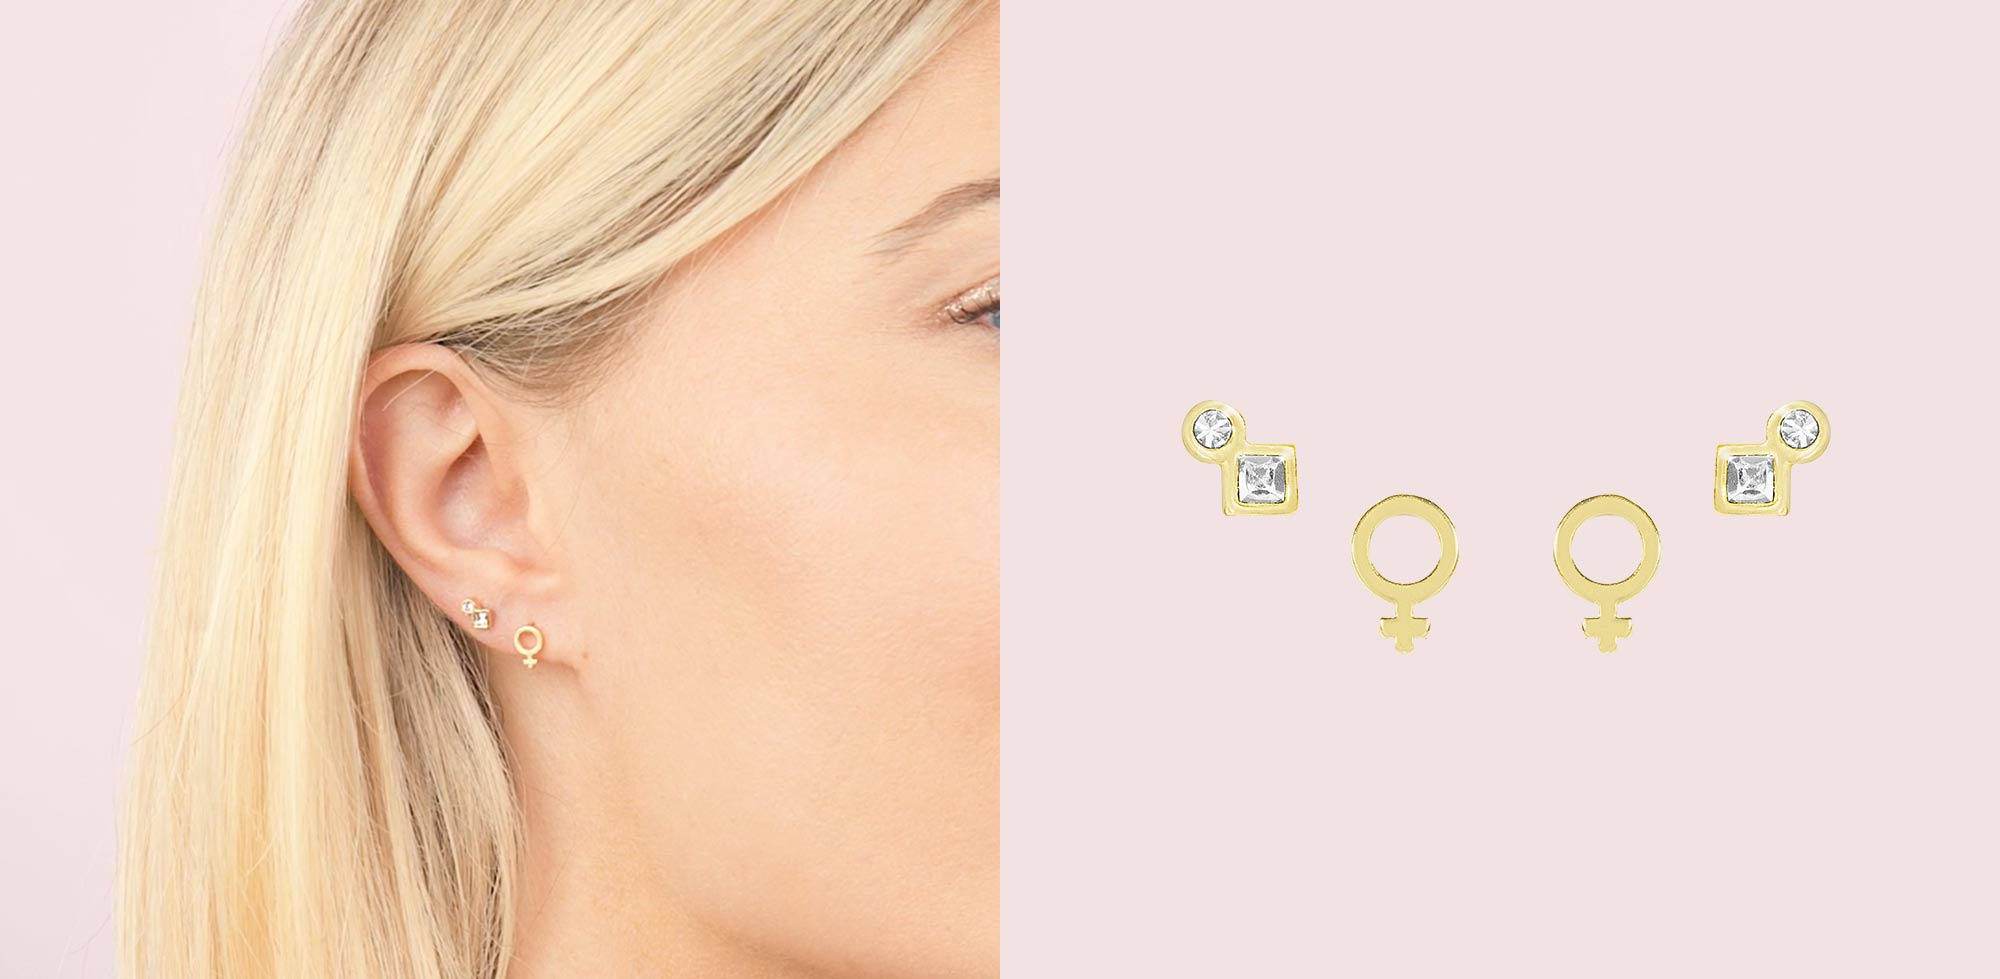 Earring Sets by Katie Dean Jewelry. Featuring the Female Symbol Studs and Geo Mini Studs. Sold as a set so you can save while shopping for your nickel free, hypoallergenic earrings.